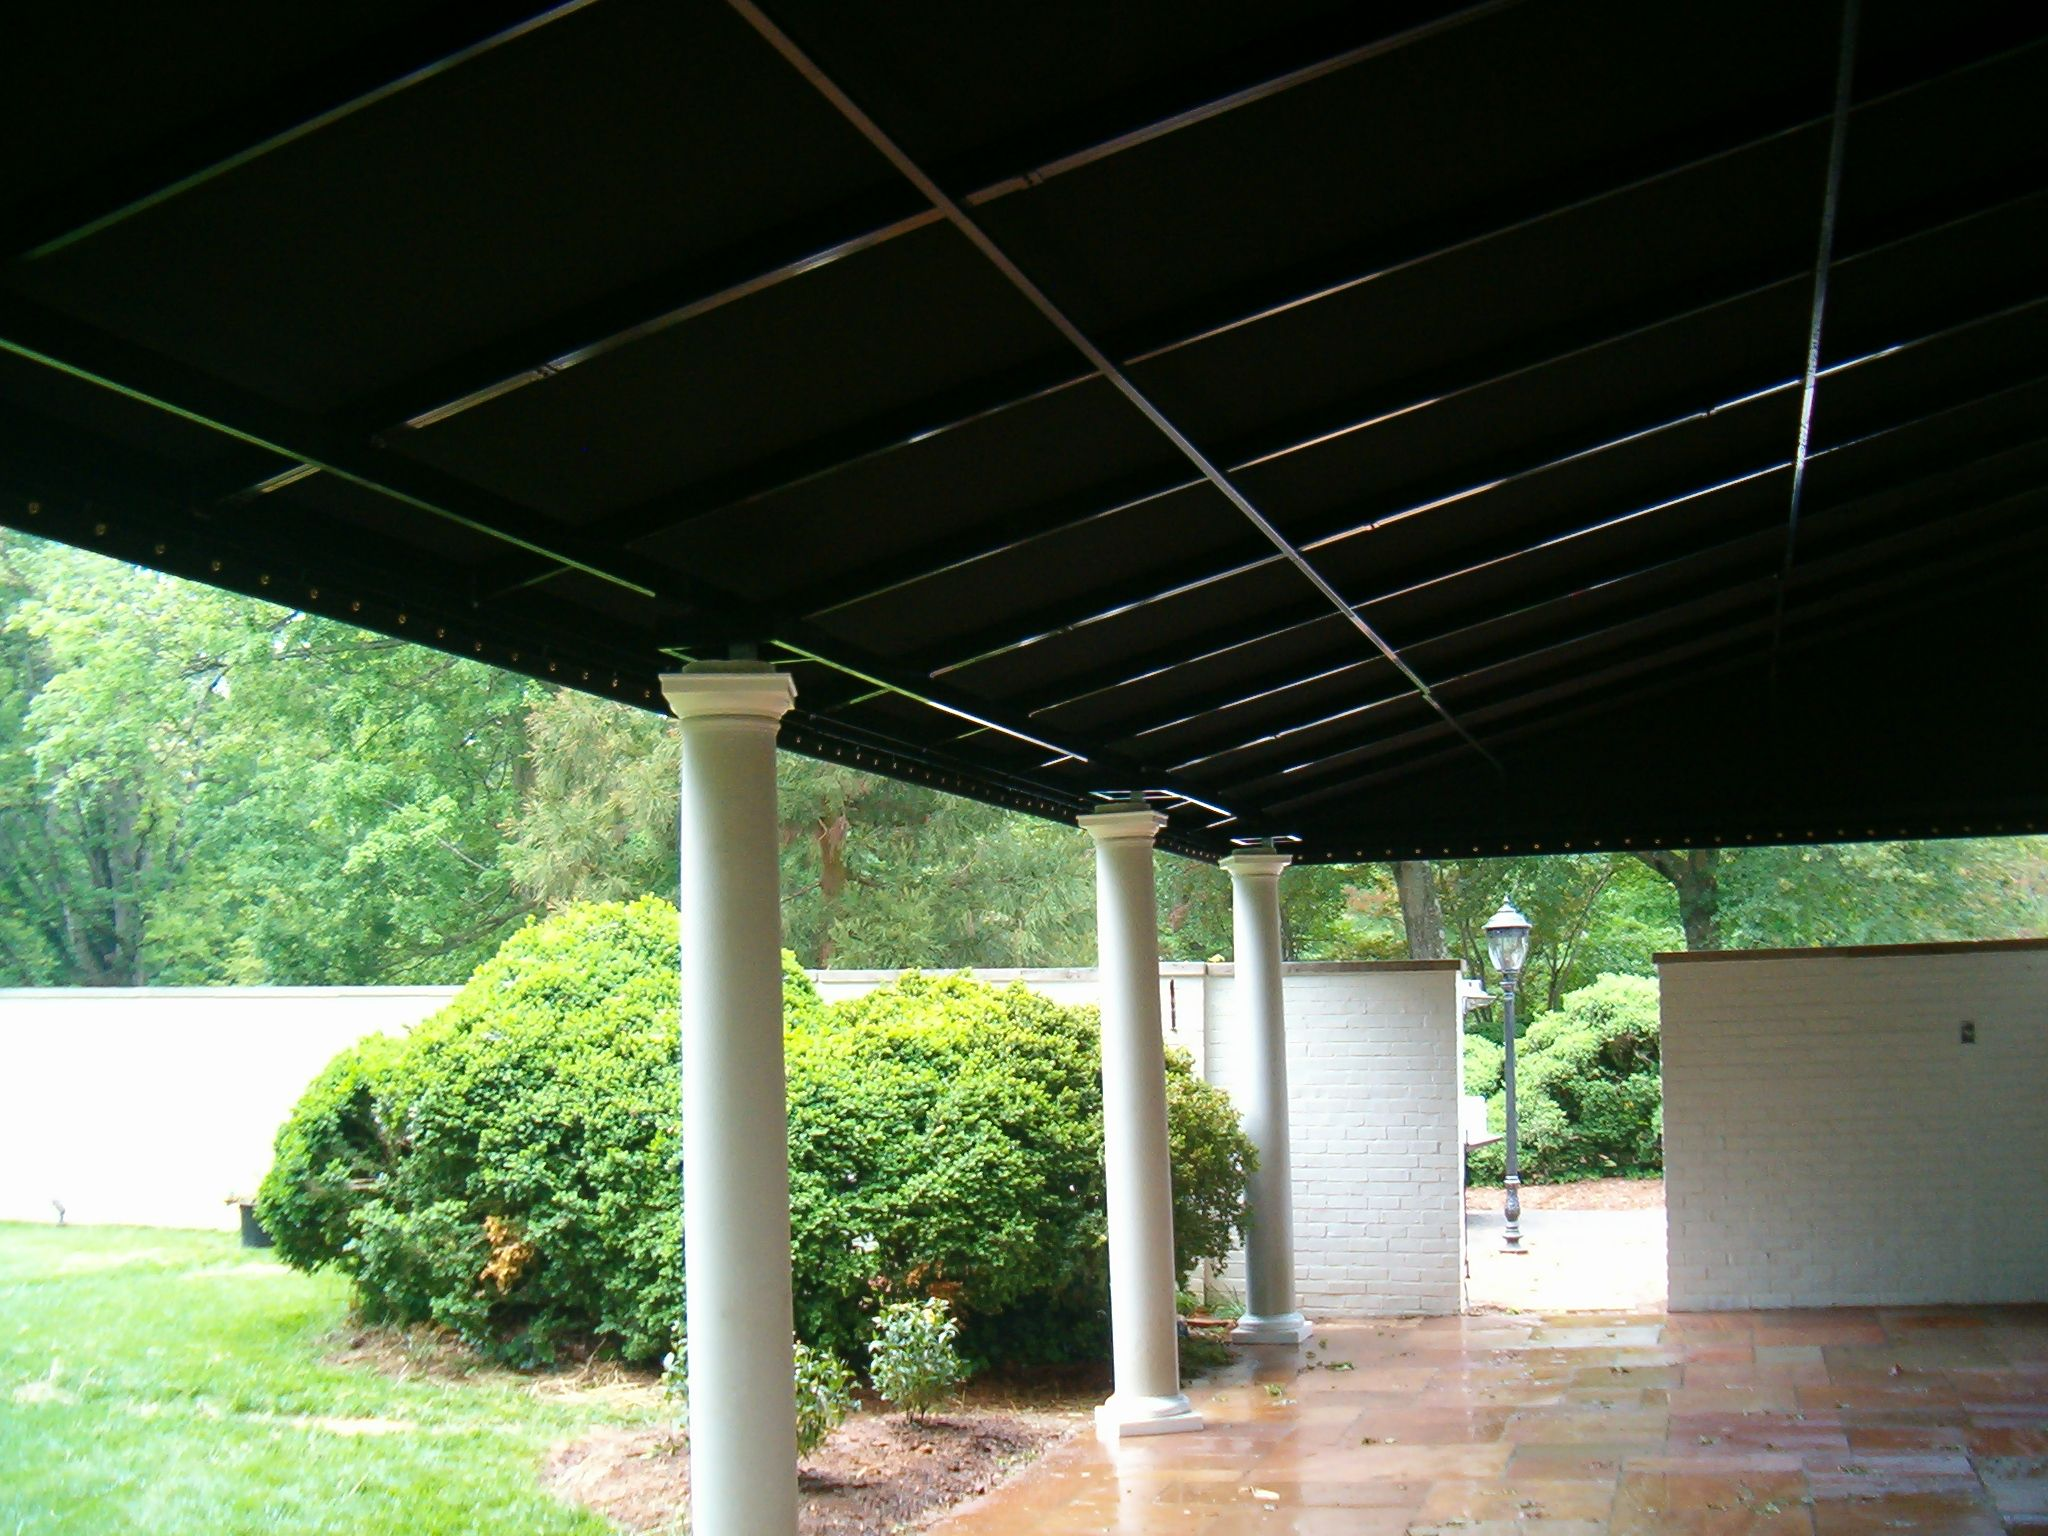 Stationary Patio Awning Featuring Sunbrella Fabric W Black Powder Coated Frame And Column Accents By Alpha Canvas Awnin Patio Awning Pergola Pergola Shade